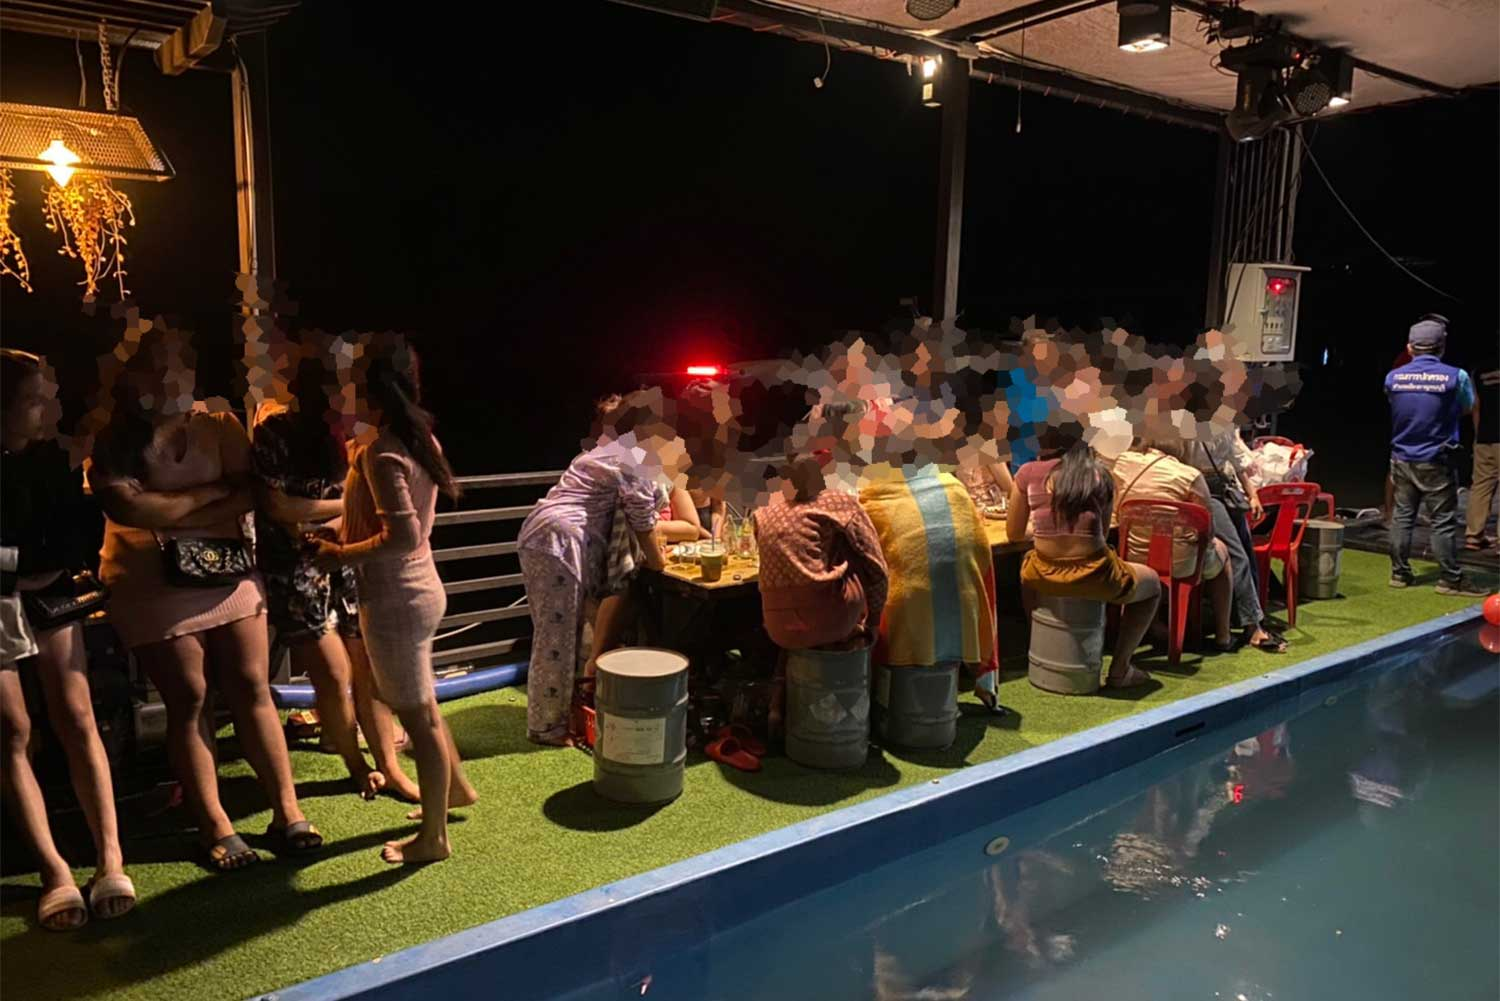 Some of the 53 young people found partying on a disco raft wait to be questioned and tested after the raft was brought ashore in Kanchanaburi province on Friday night. (Supplied photo via Piyarat Chongcharoen)